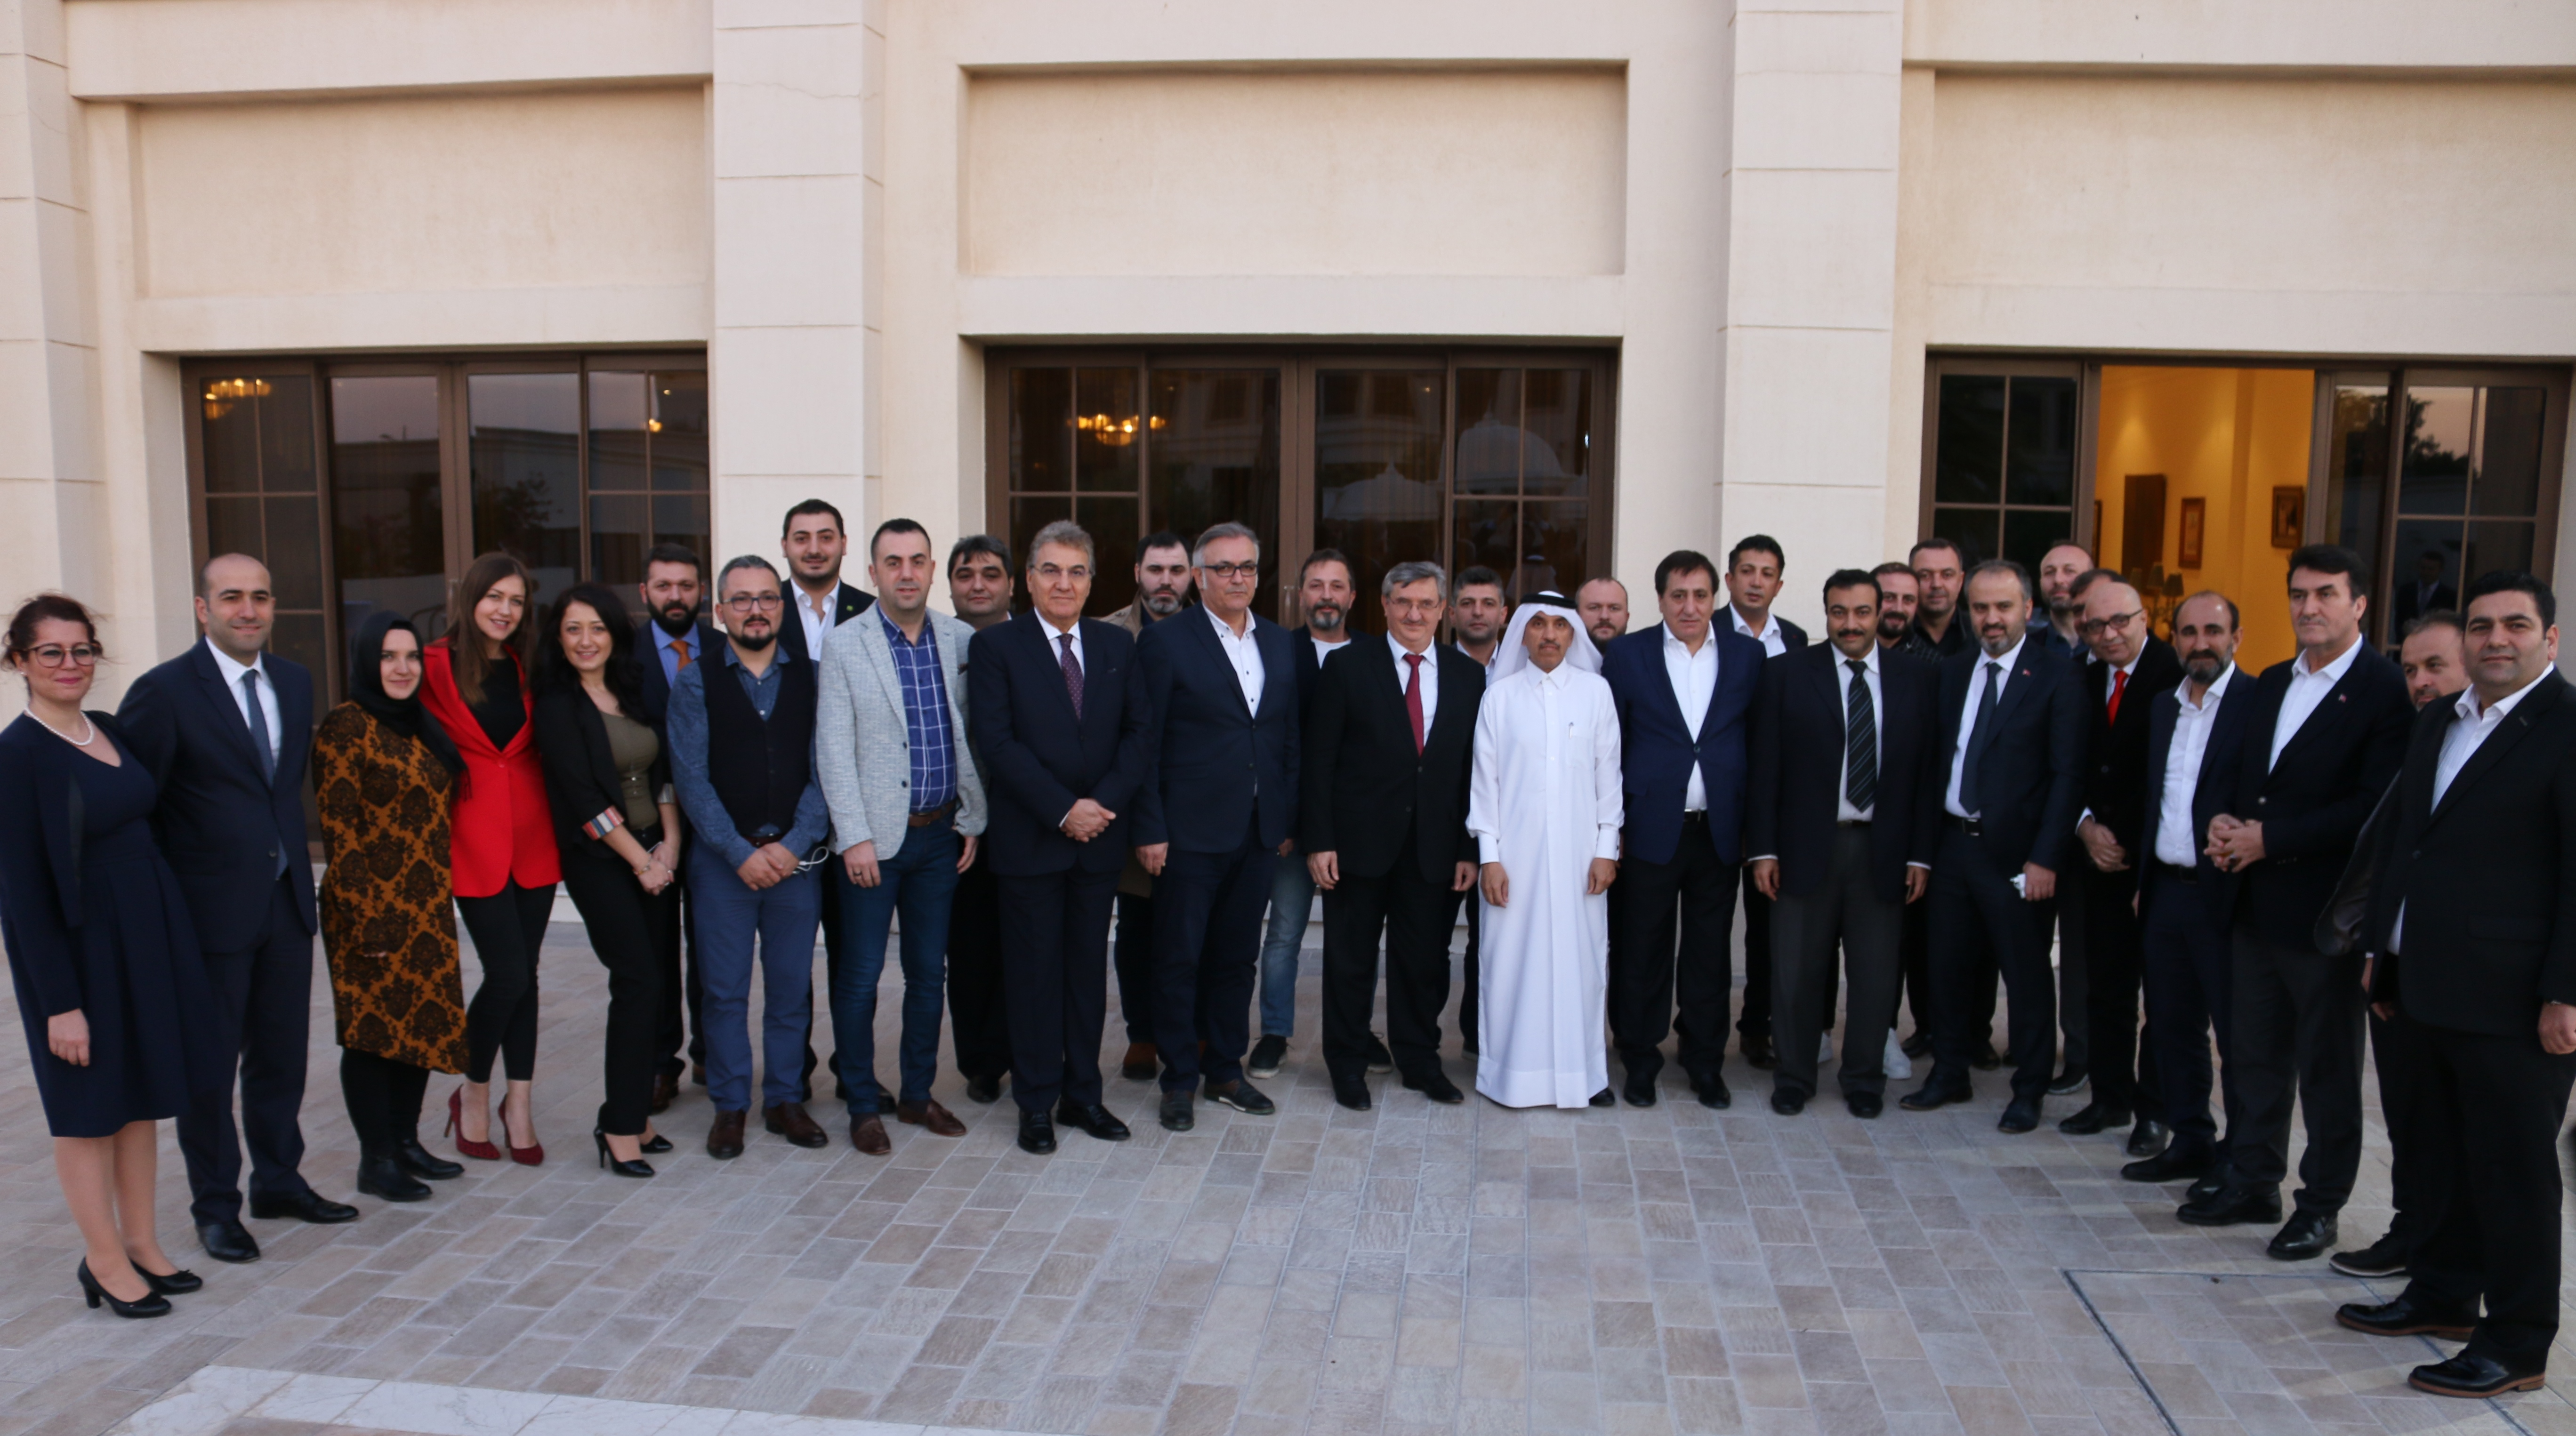 160 Companies To Participate in Expo Turkey, Holding in Doha From 17-19 Jan.